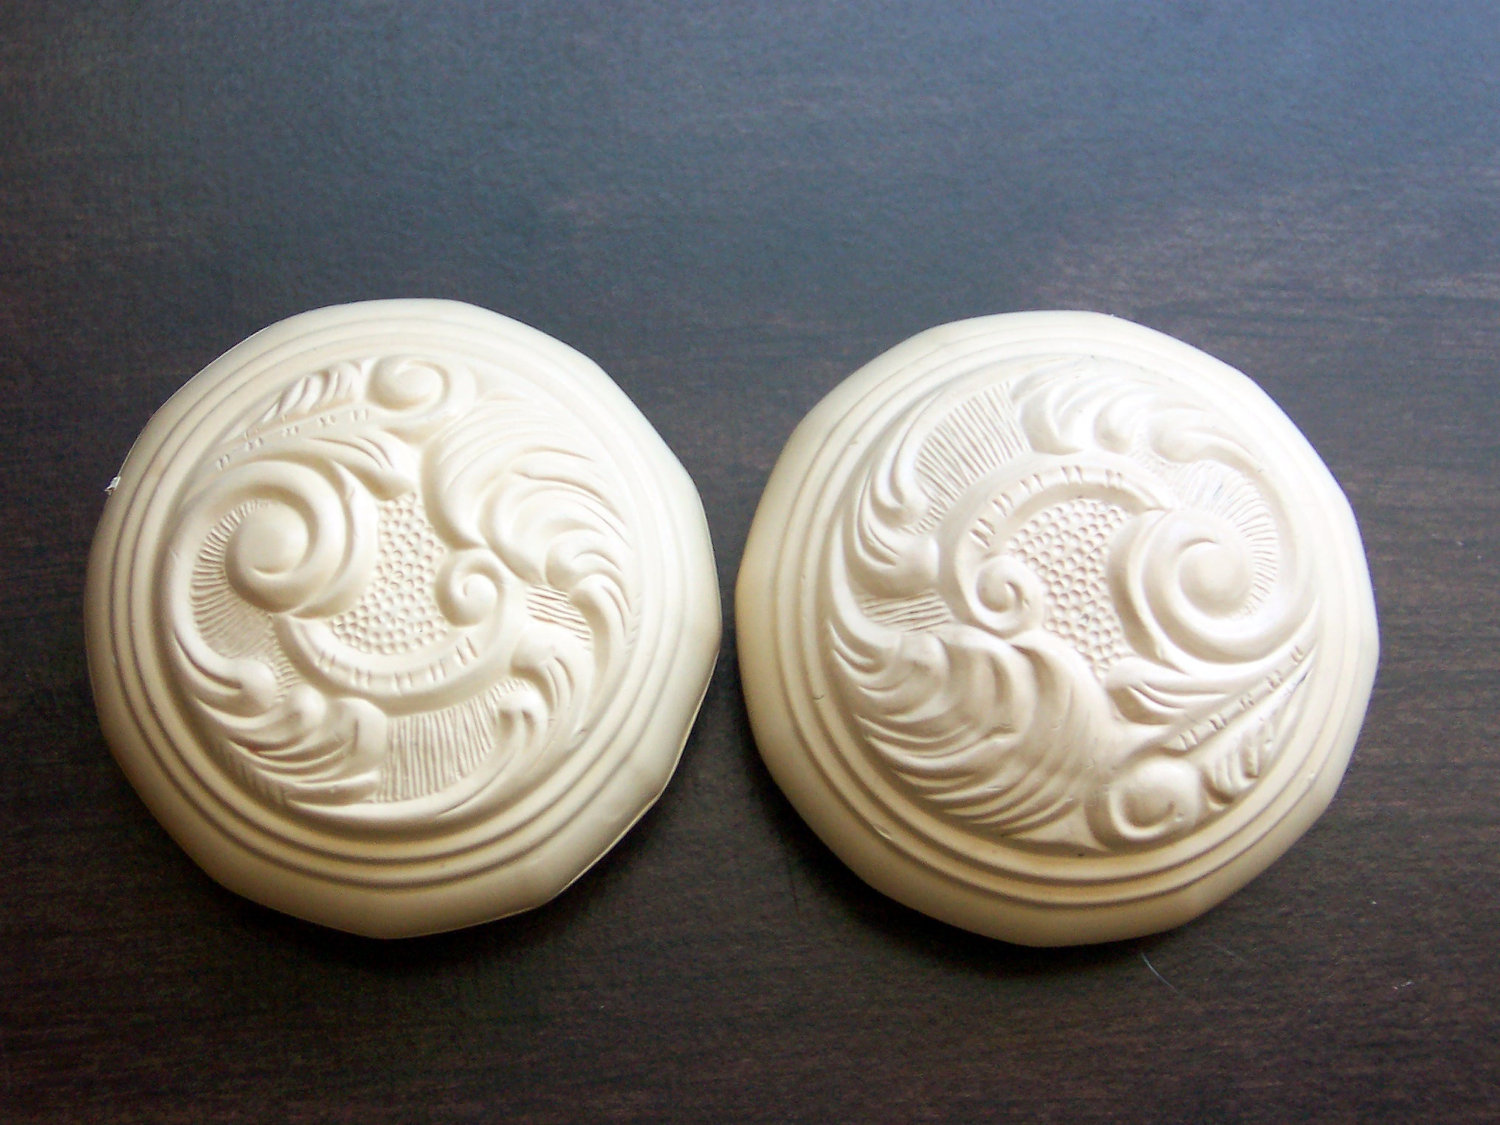 decorative door knob covers photo - 3